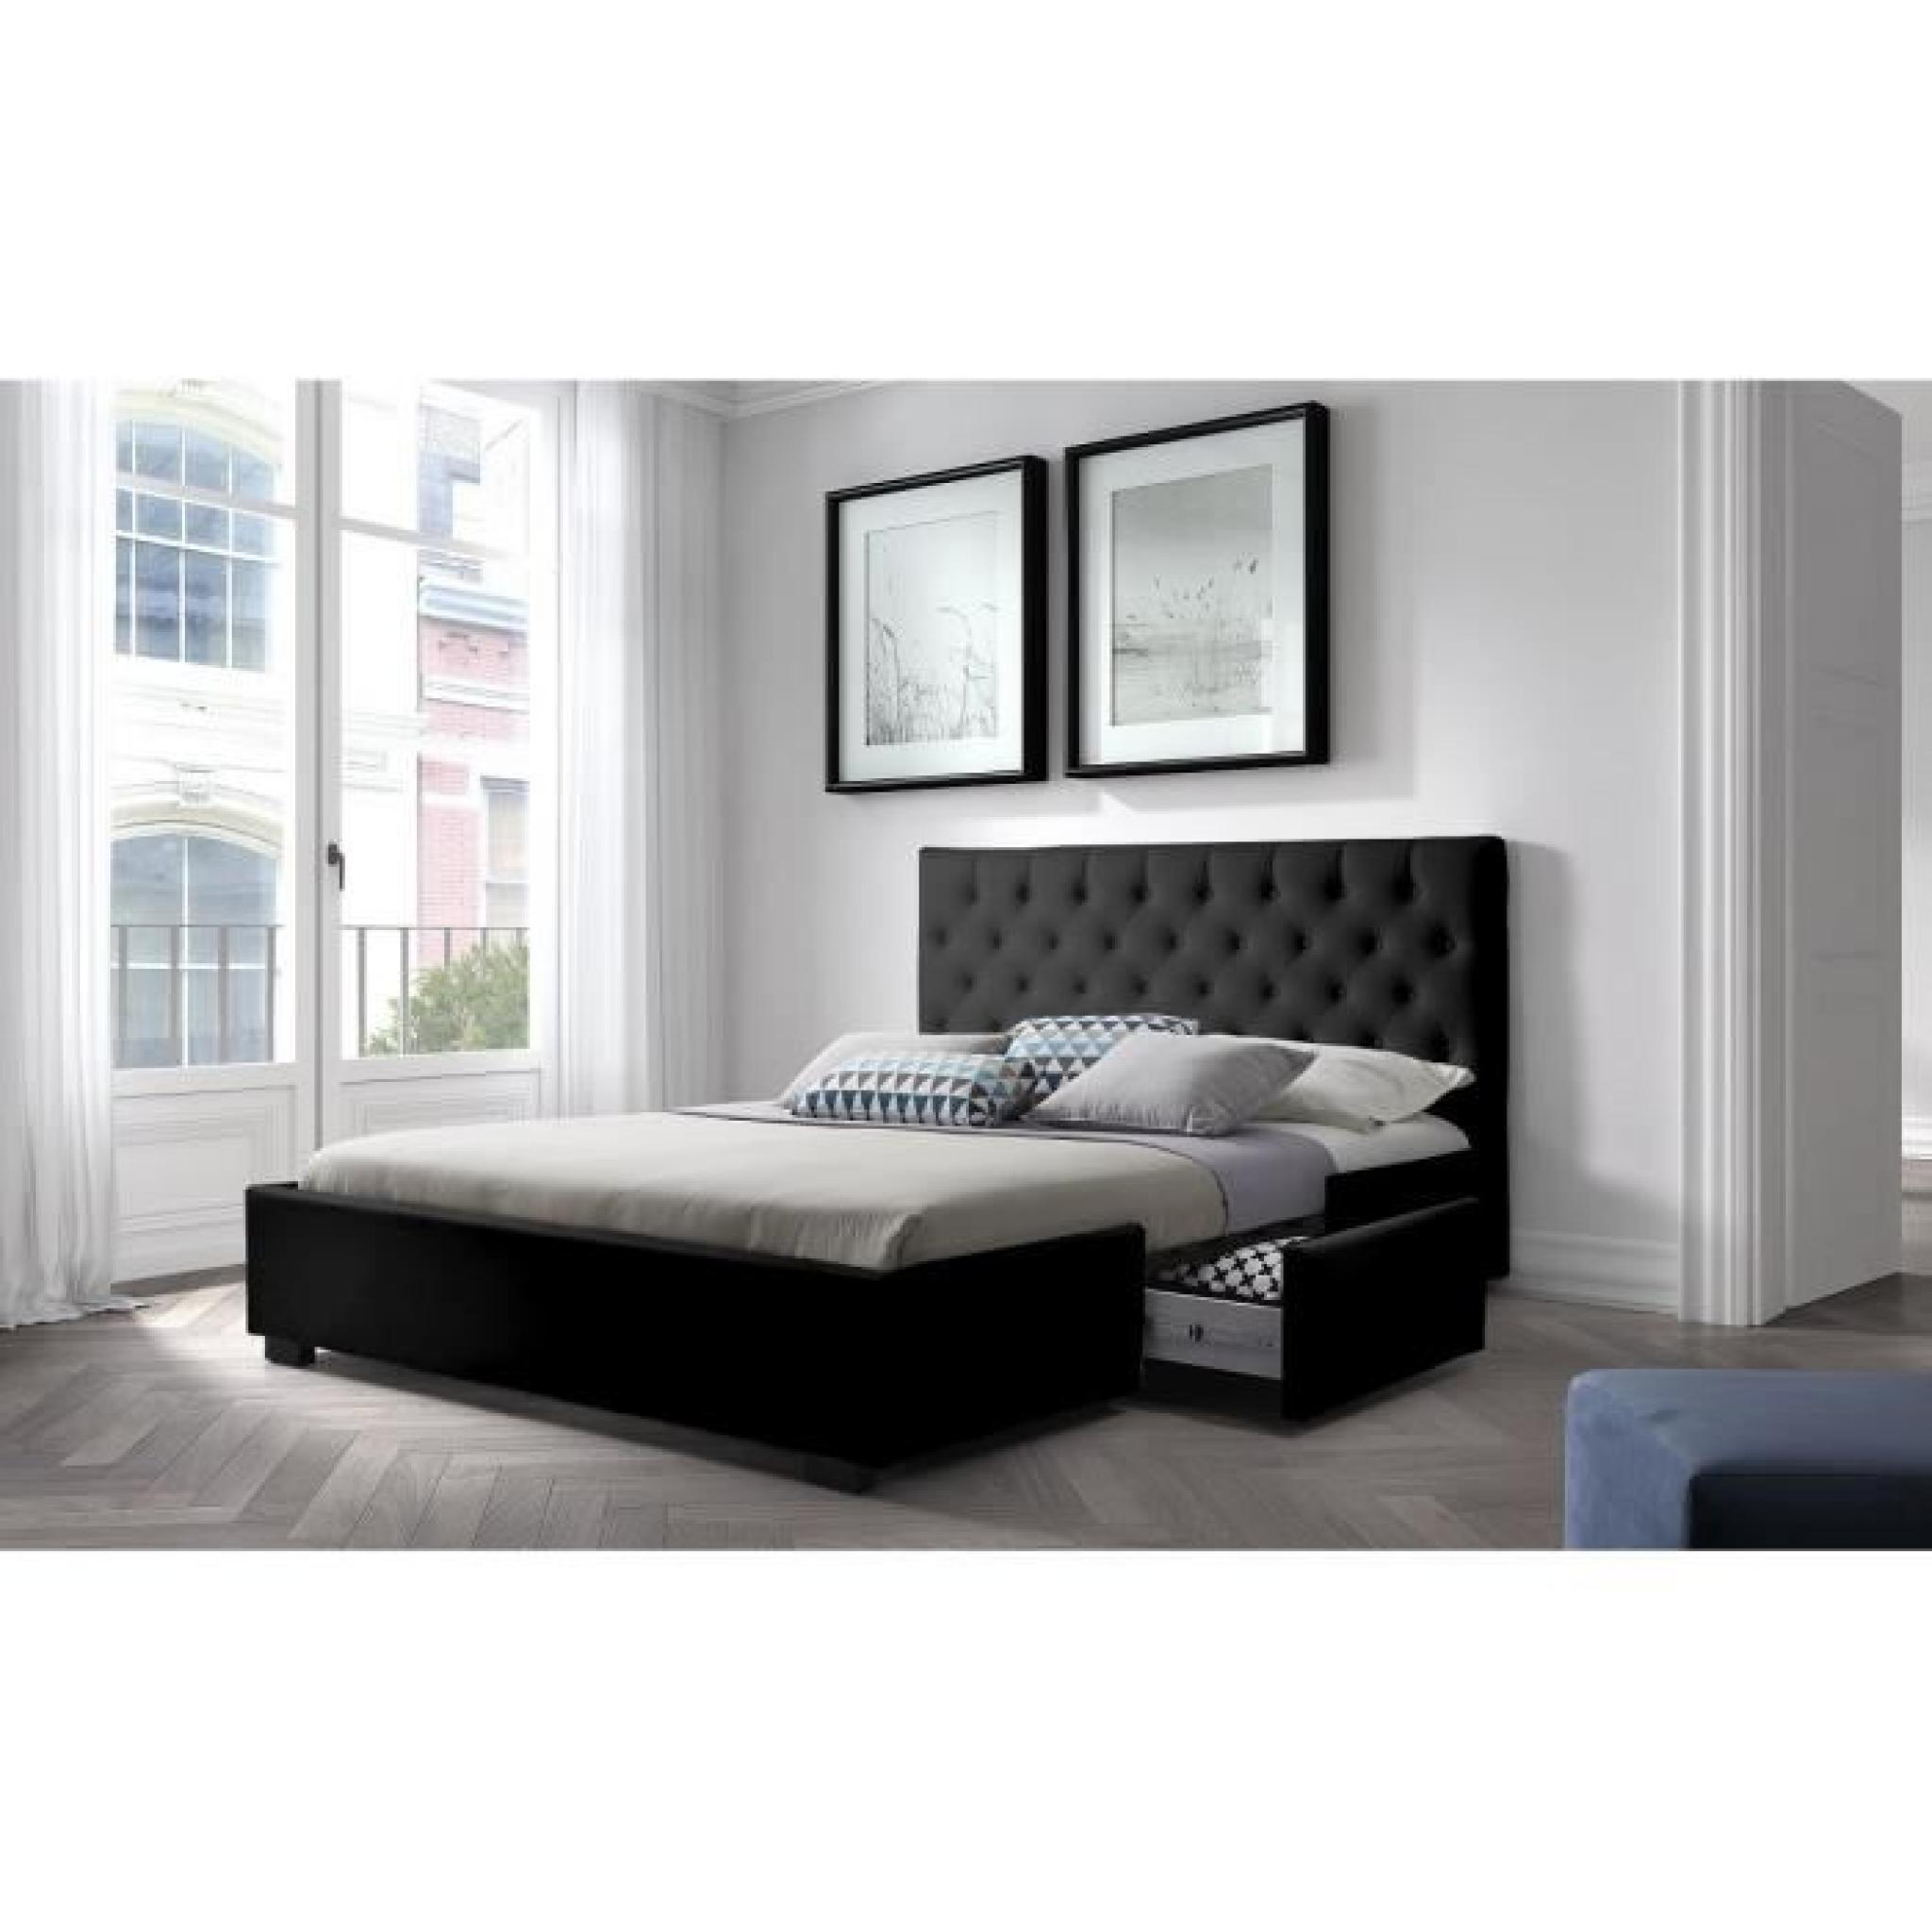 louis structure de lit 180x200 cm sommier 2 tiroirs simili noir achat vente lit pas. Black Bedroom Furniture Sets. Home Design Ideas